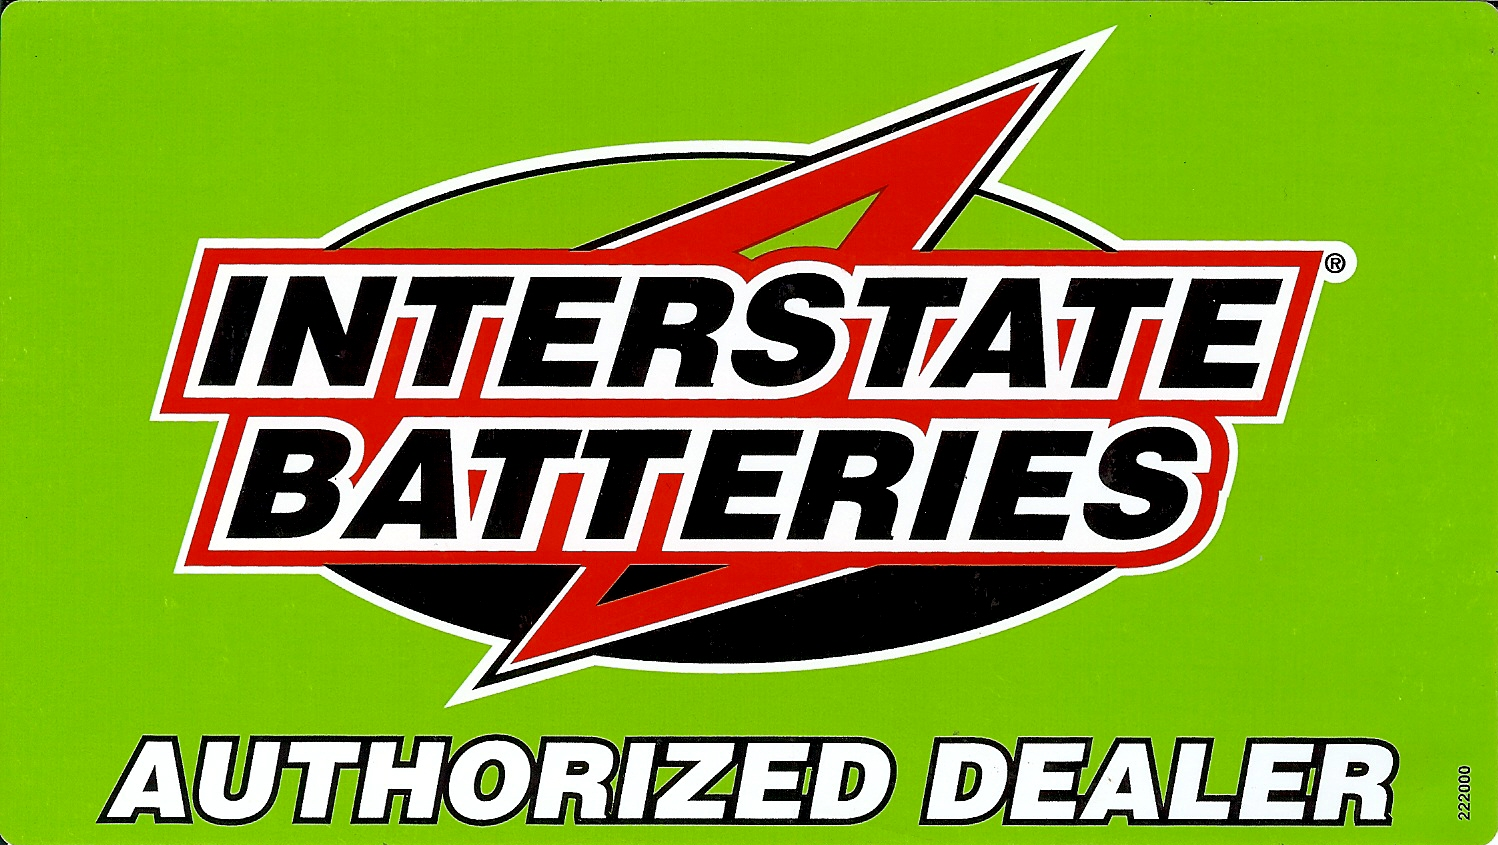 interstatedealerlogo.jpg